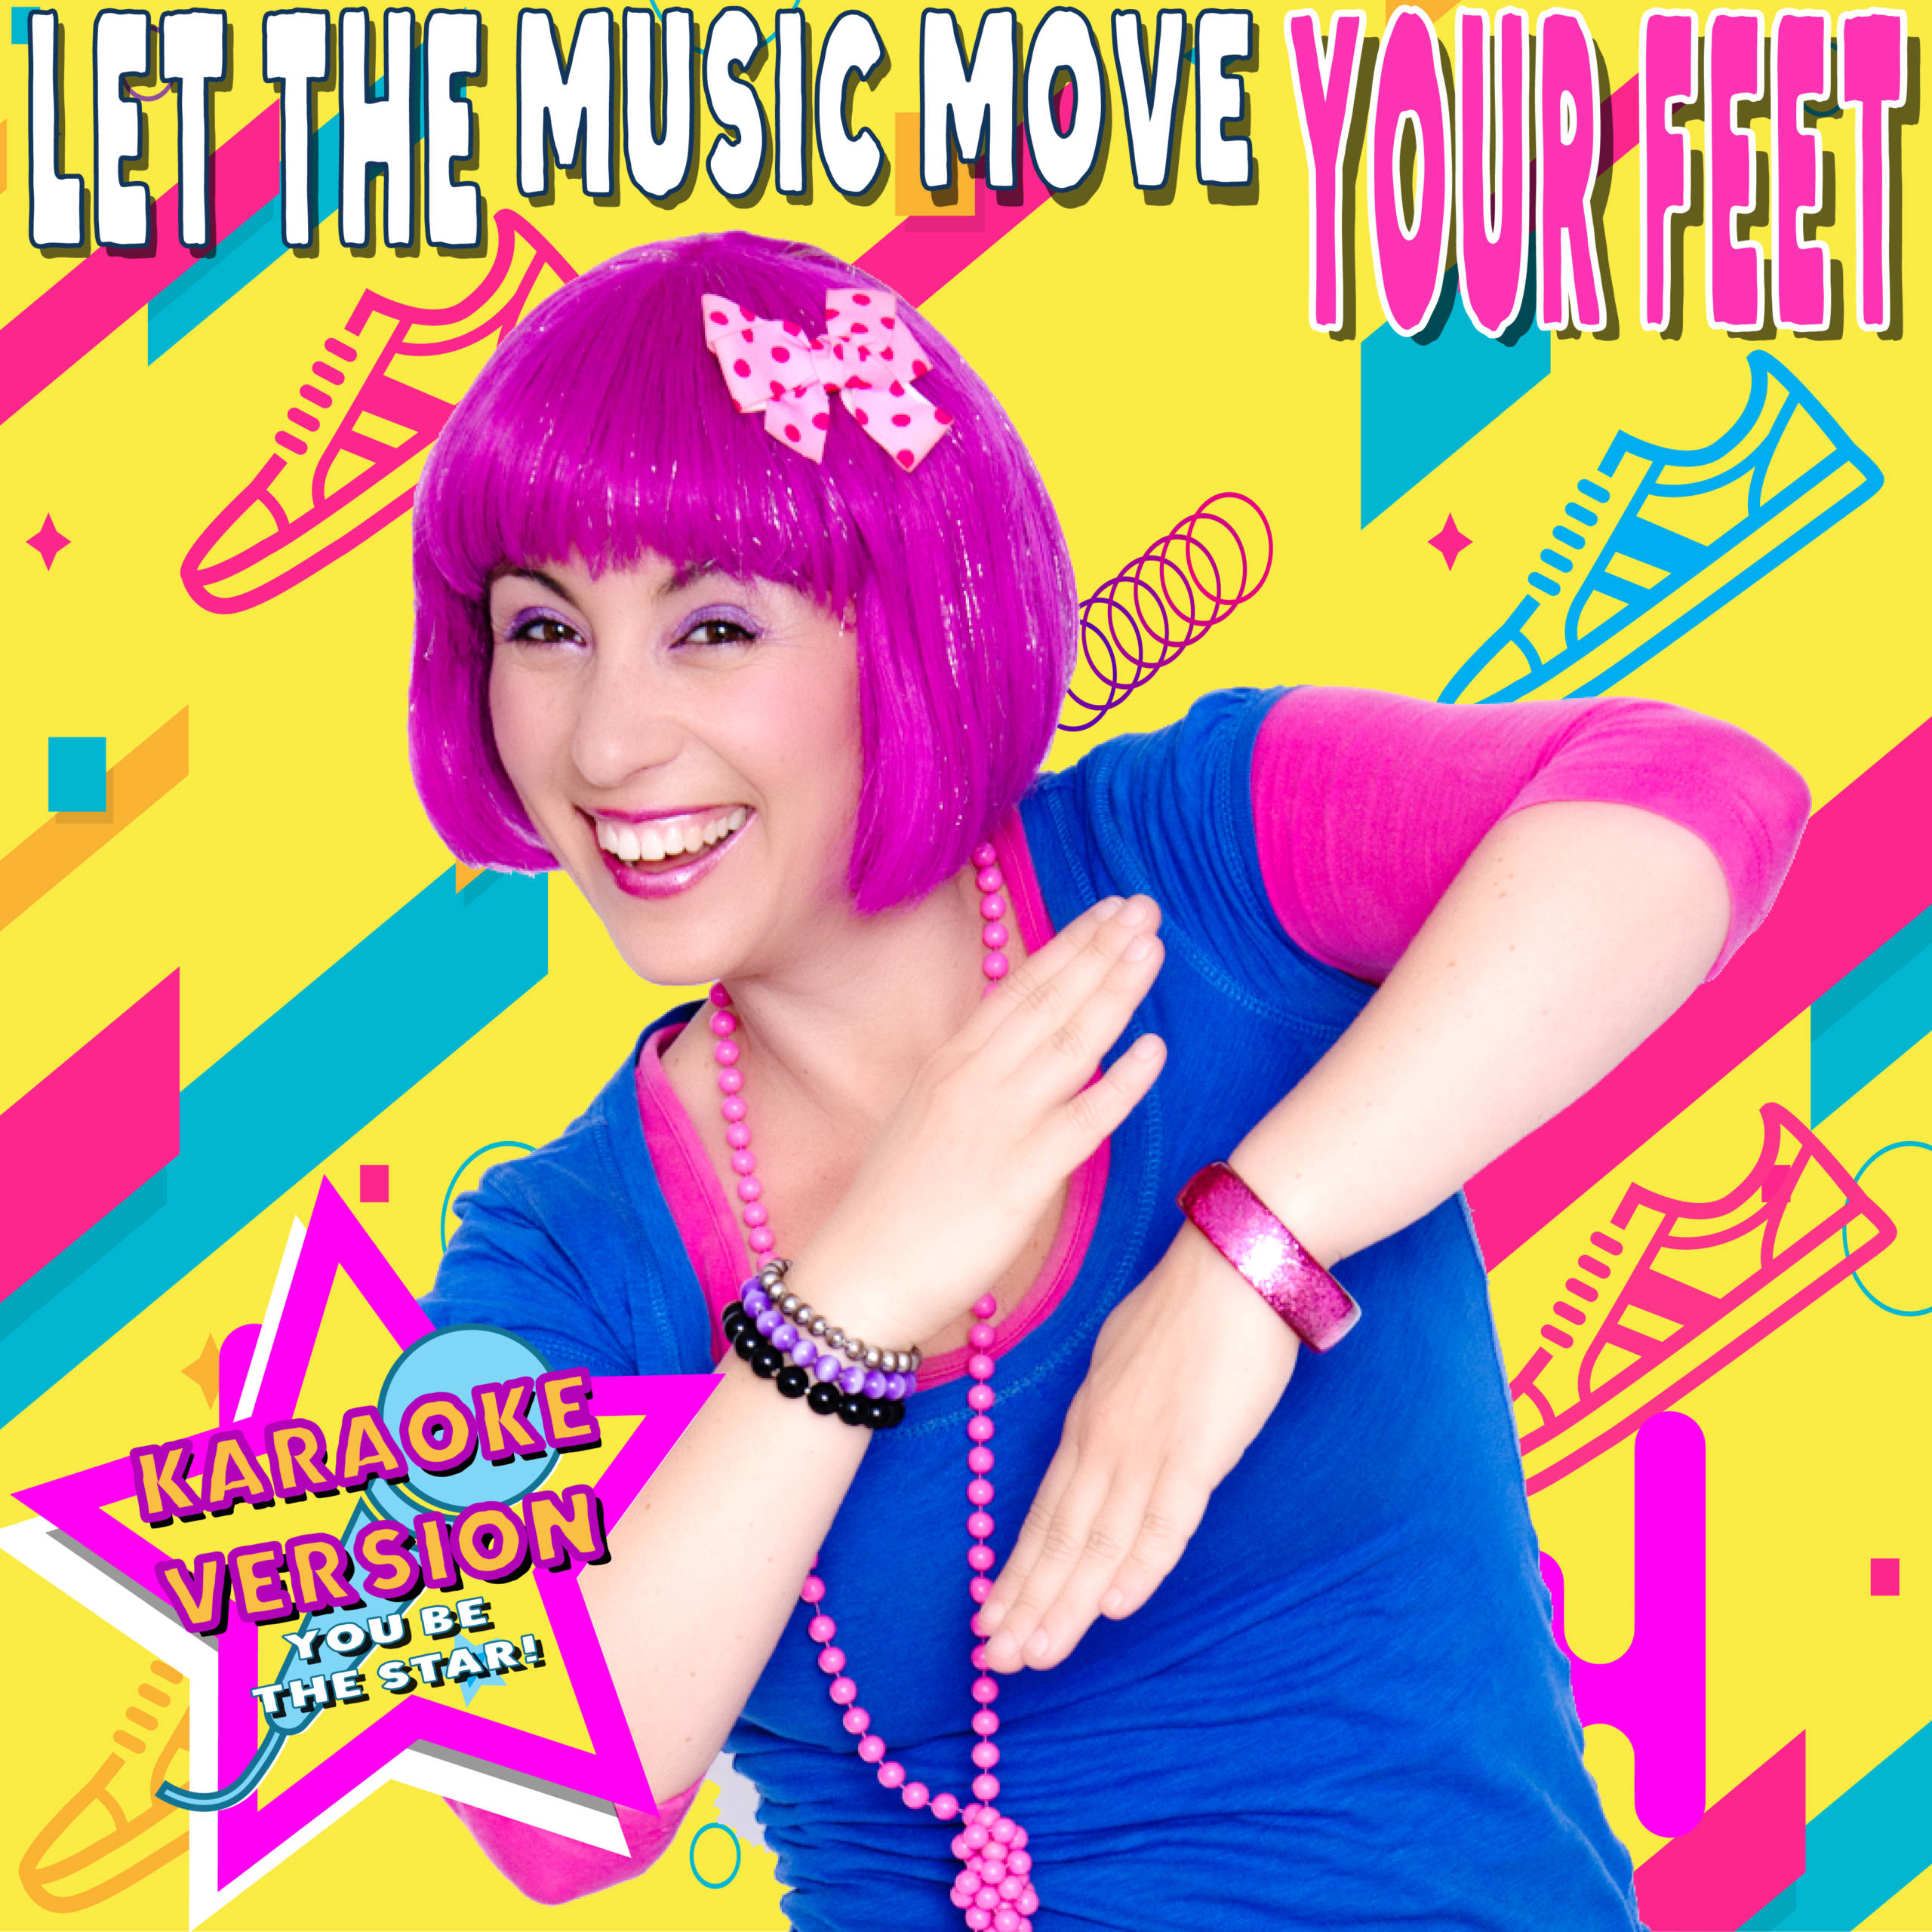 Let the music move your feet karaoke version debbie doo music artwork